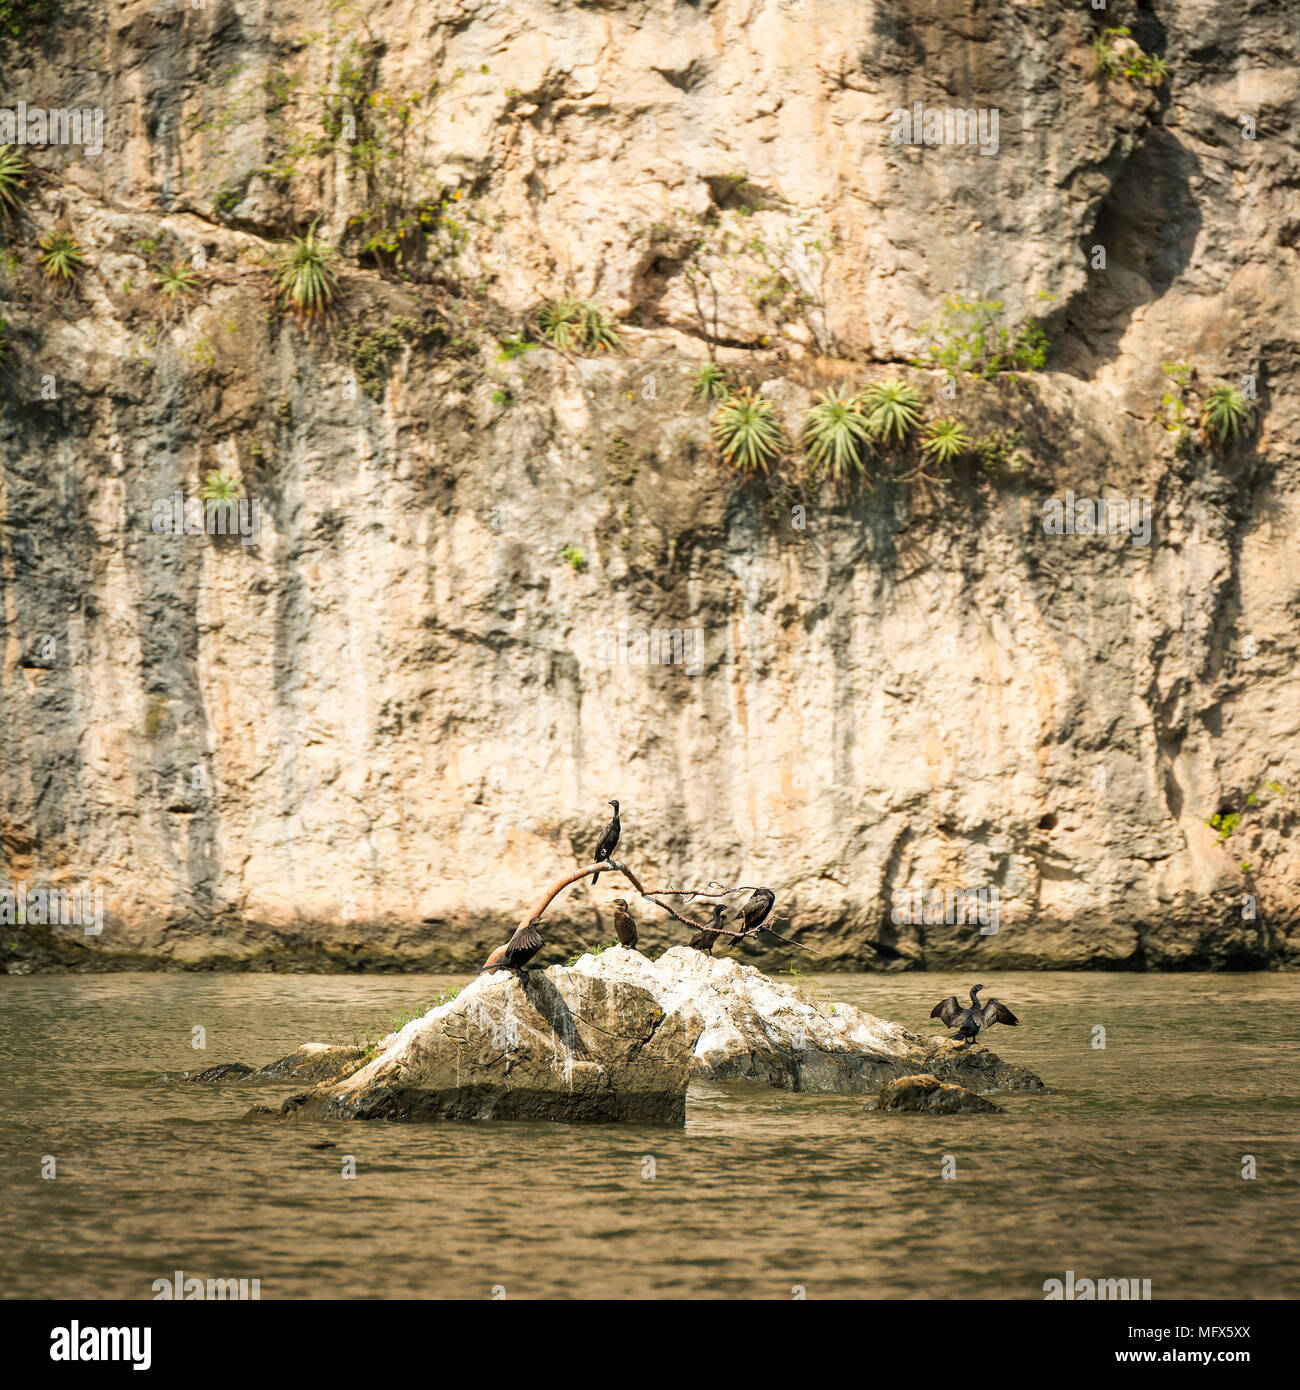 Birds sunbathing on rock in the Grijalva River of Sumidero Canyon Chiapas Mexico Stock Photo